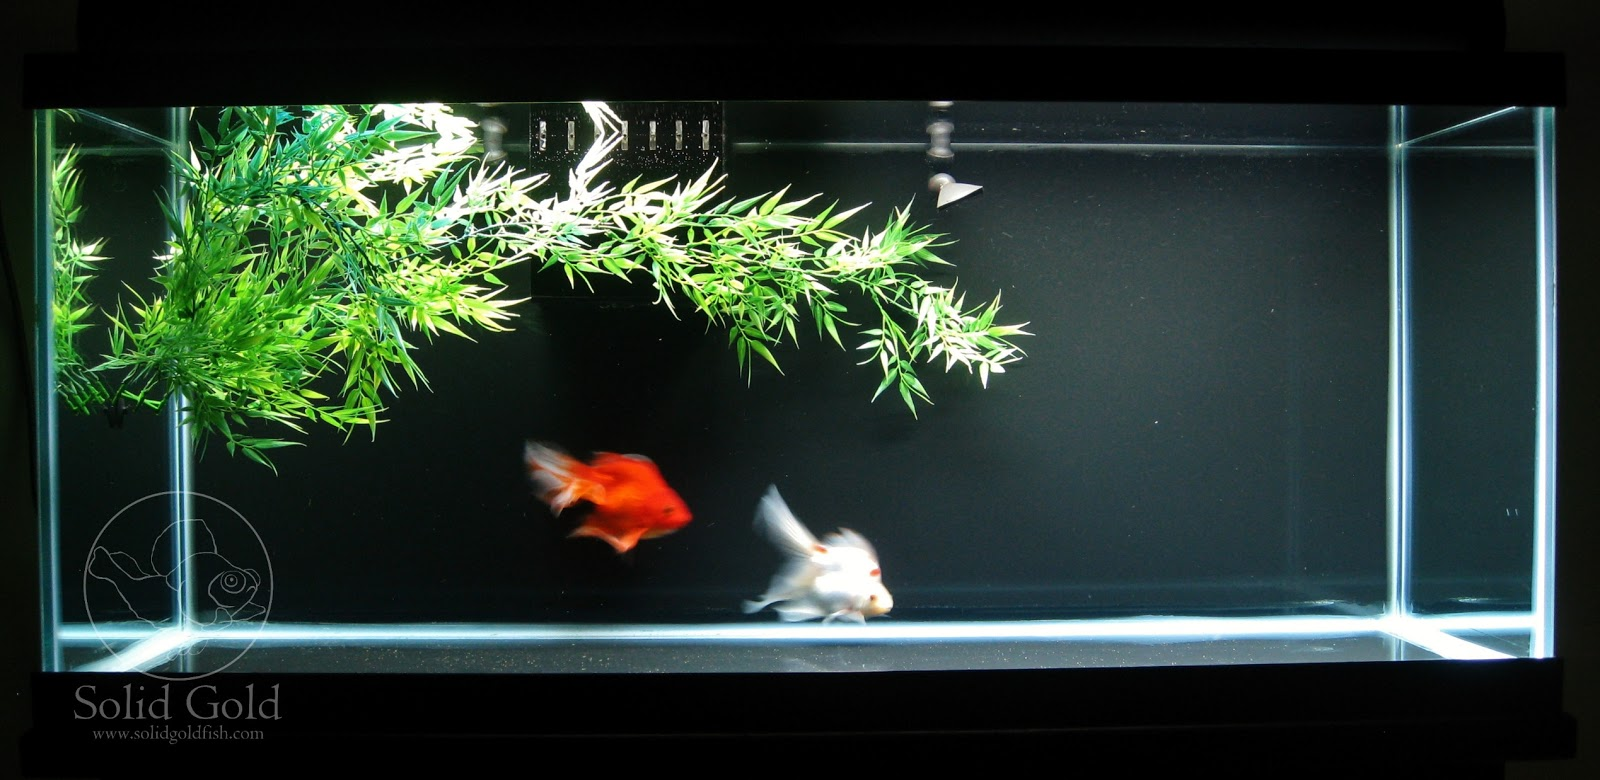 Beginner mistakes to avoid dos and don ts solid gold for Aquarium decoration for goldfish